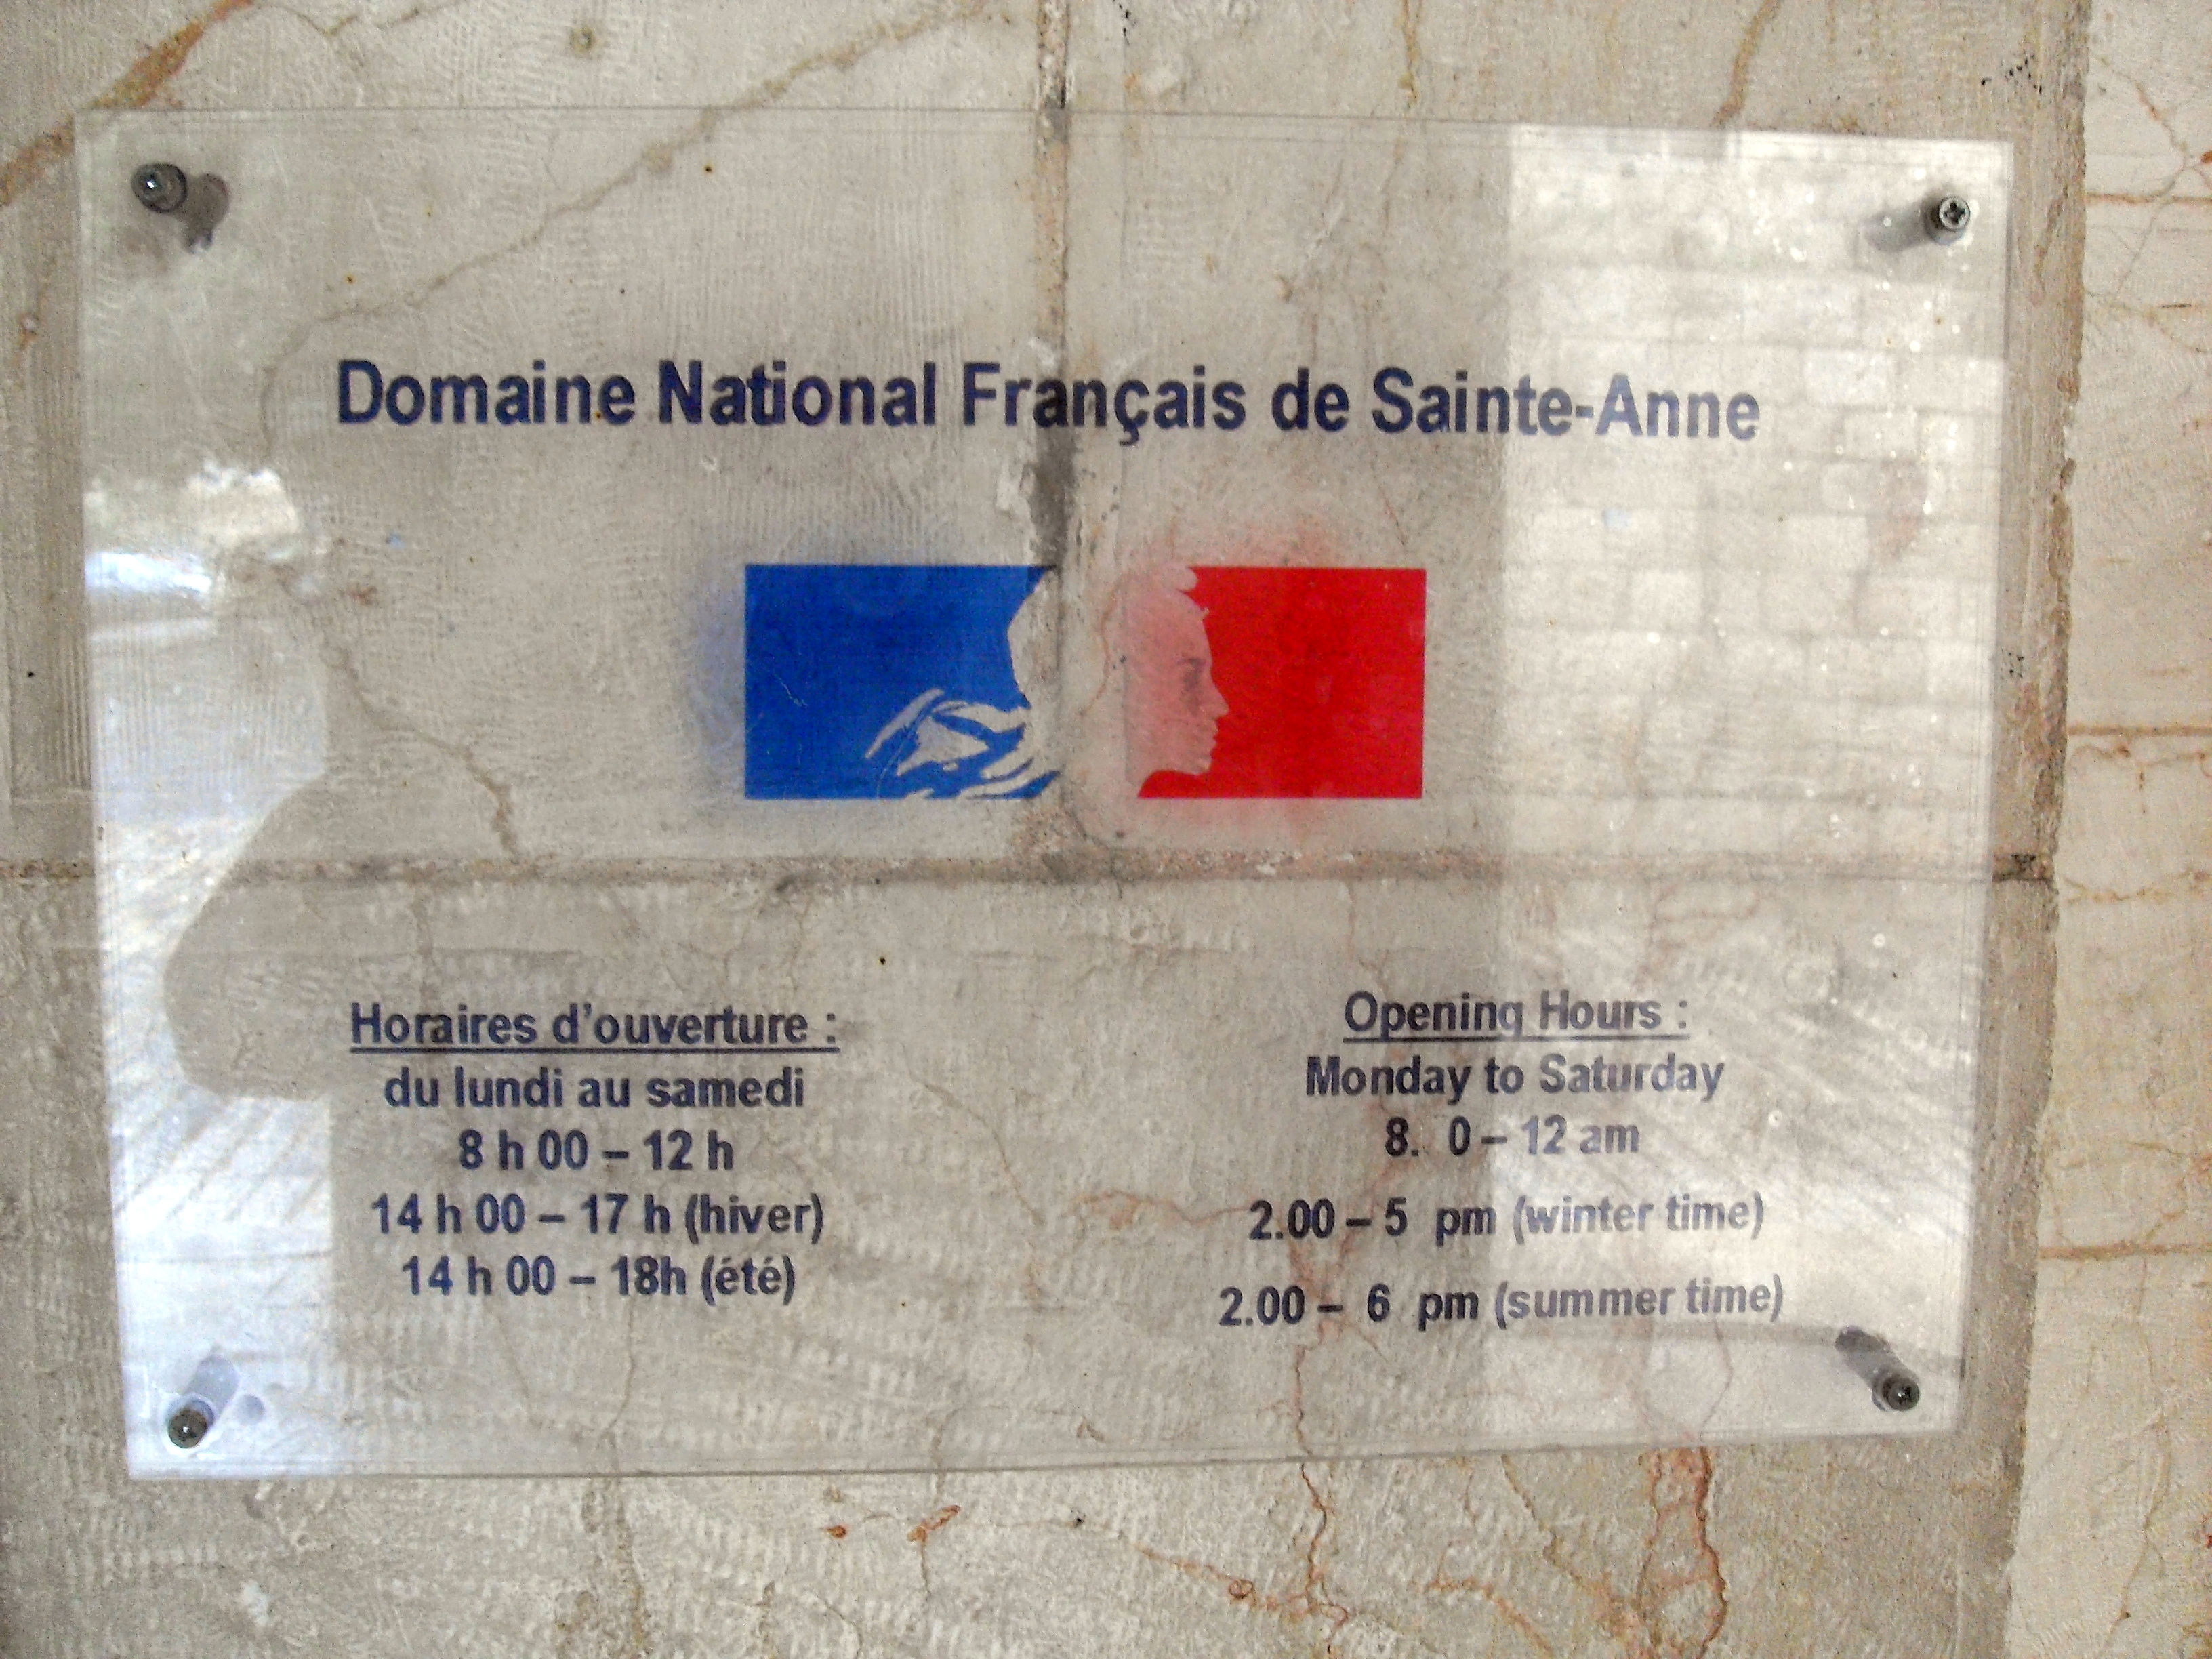 https://i2.wp.com/upload.wikimedia.org/wikipedia/commons/3/3b/Old_Jerusalem_Domaine_National_Fran%C3%A7ais_de_Saint-Anne_sign.jpg